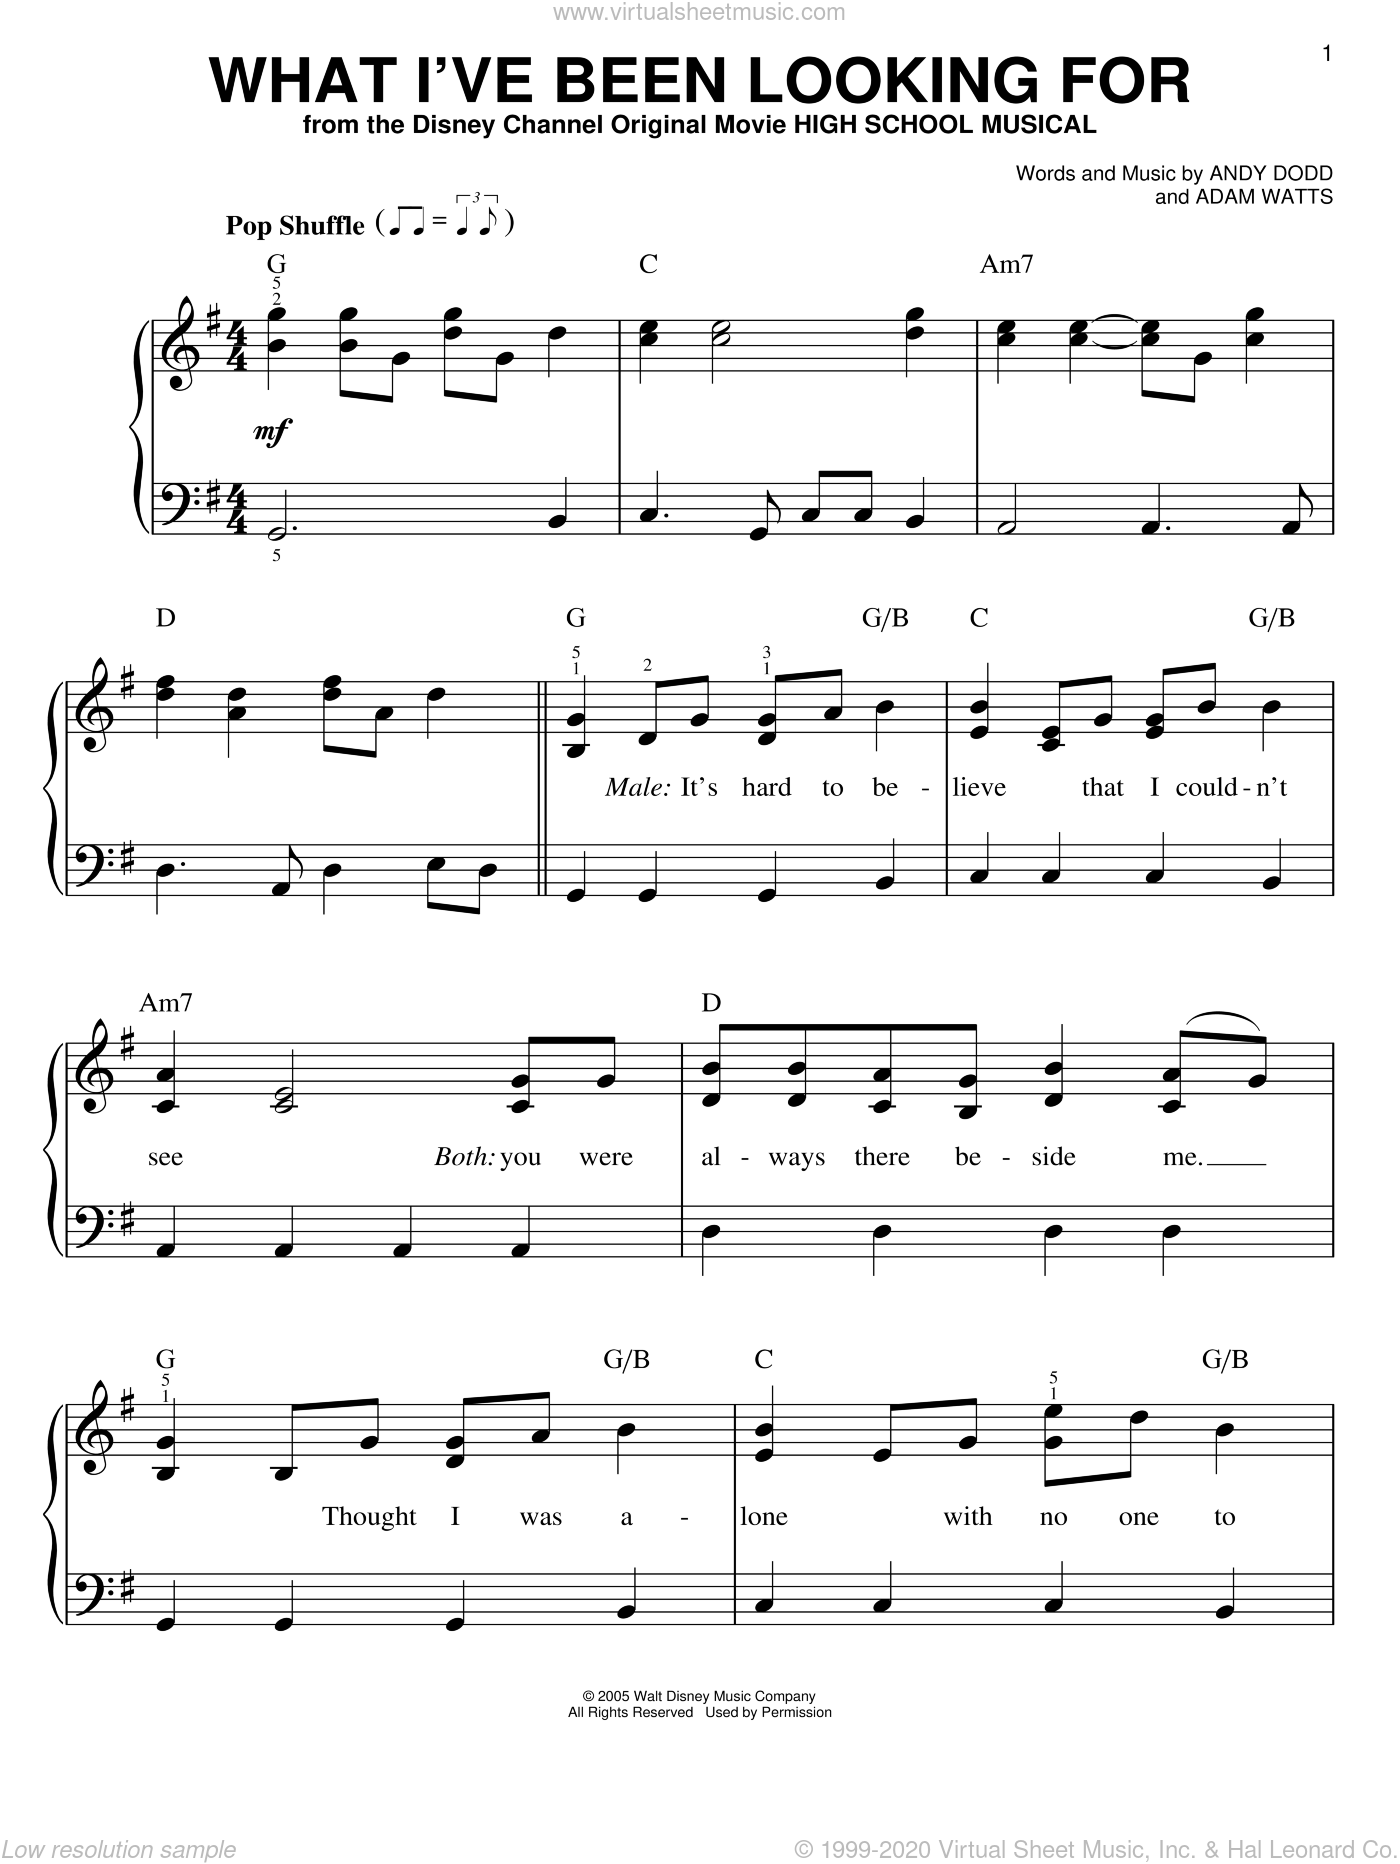 What I've Been Looking For sheet music for piano solo by High School Musical, Adam Watts and Andy Dodd, easy. Score Image Preview.